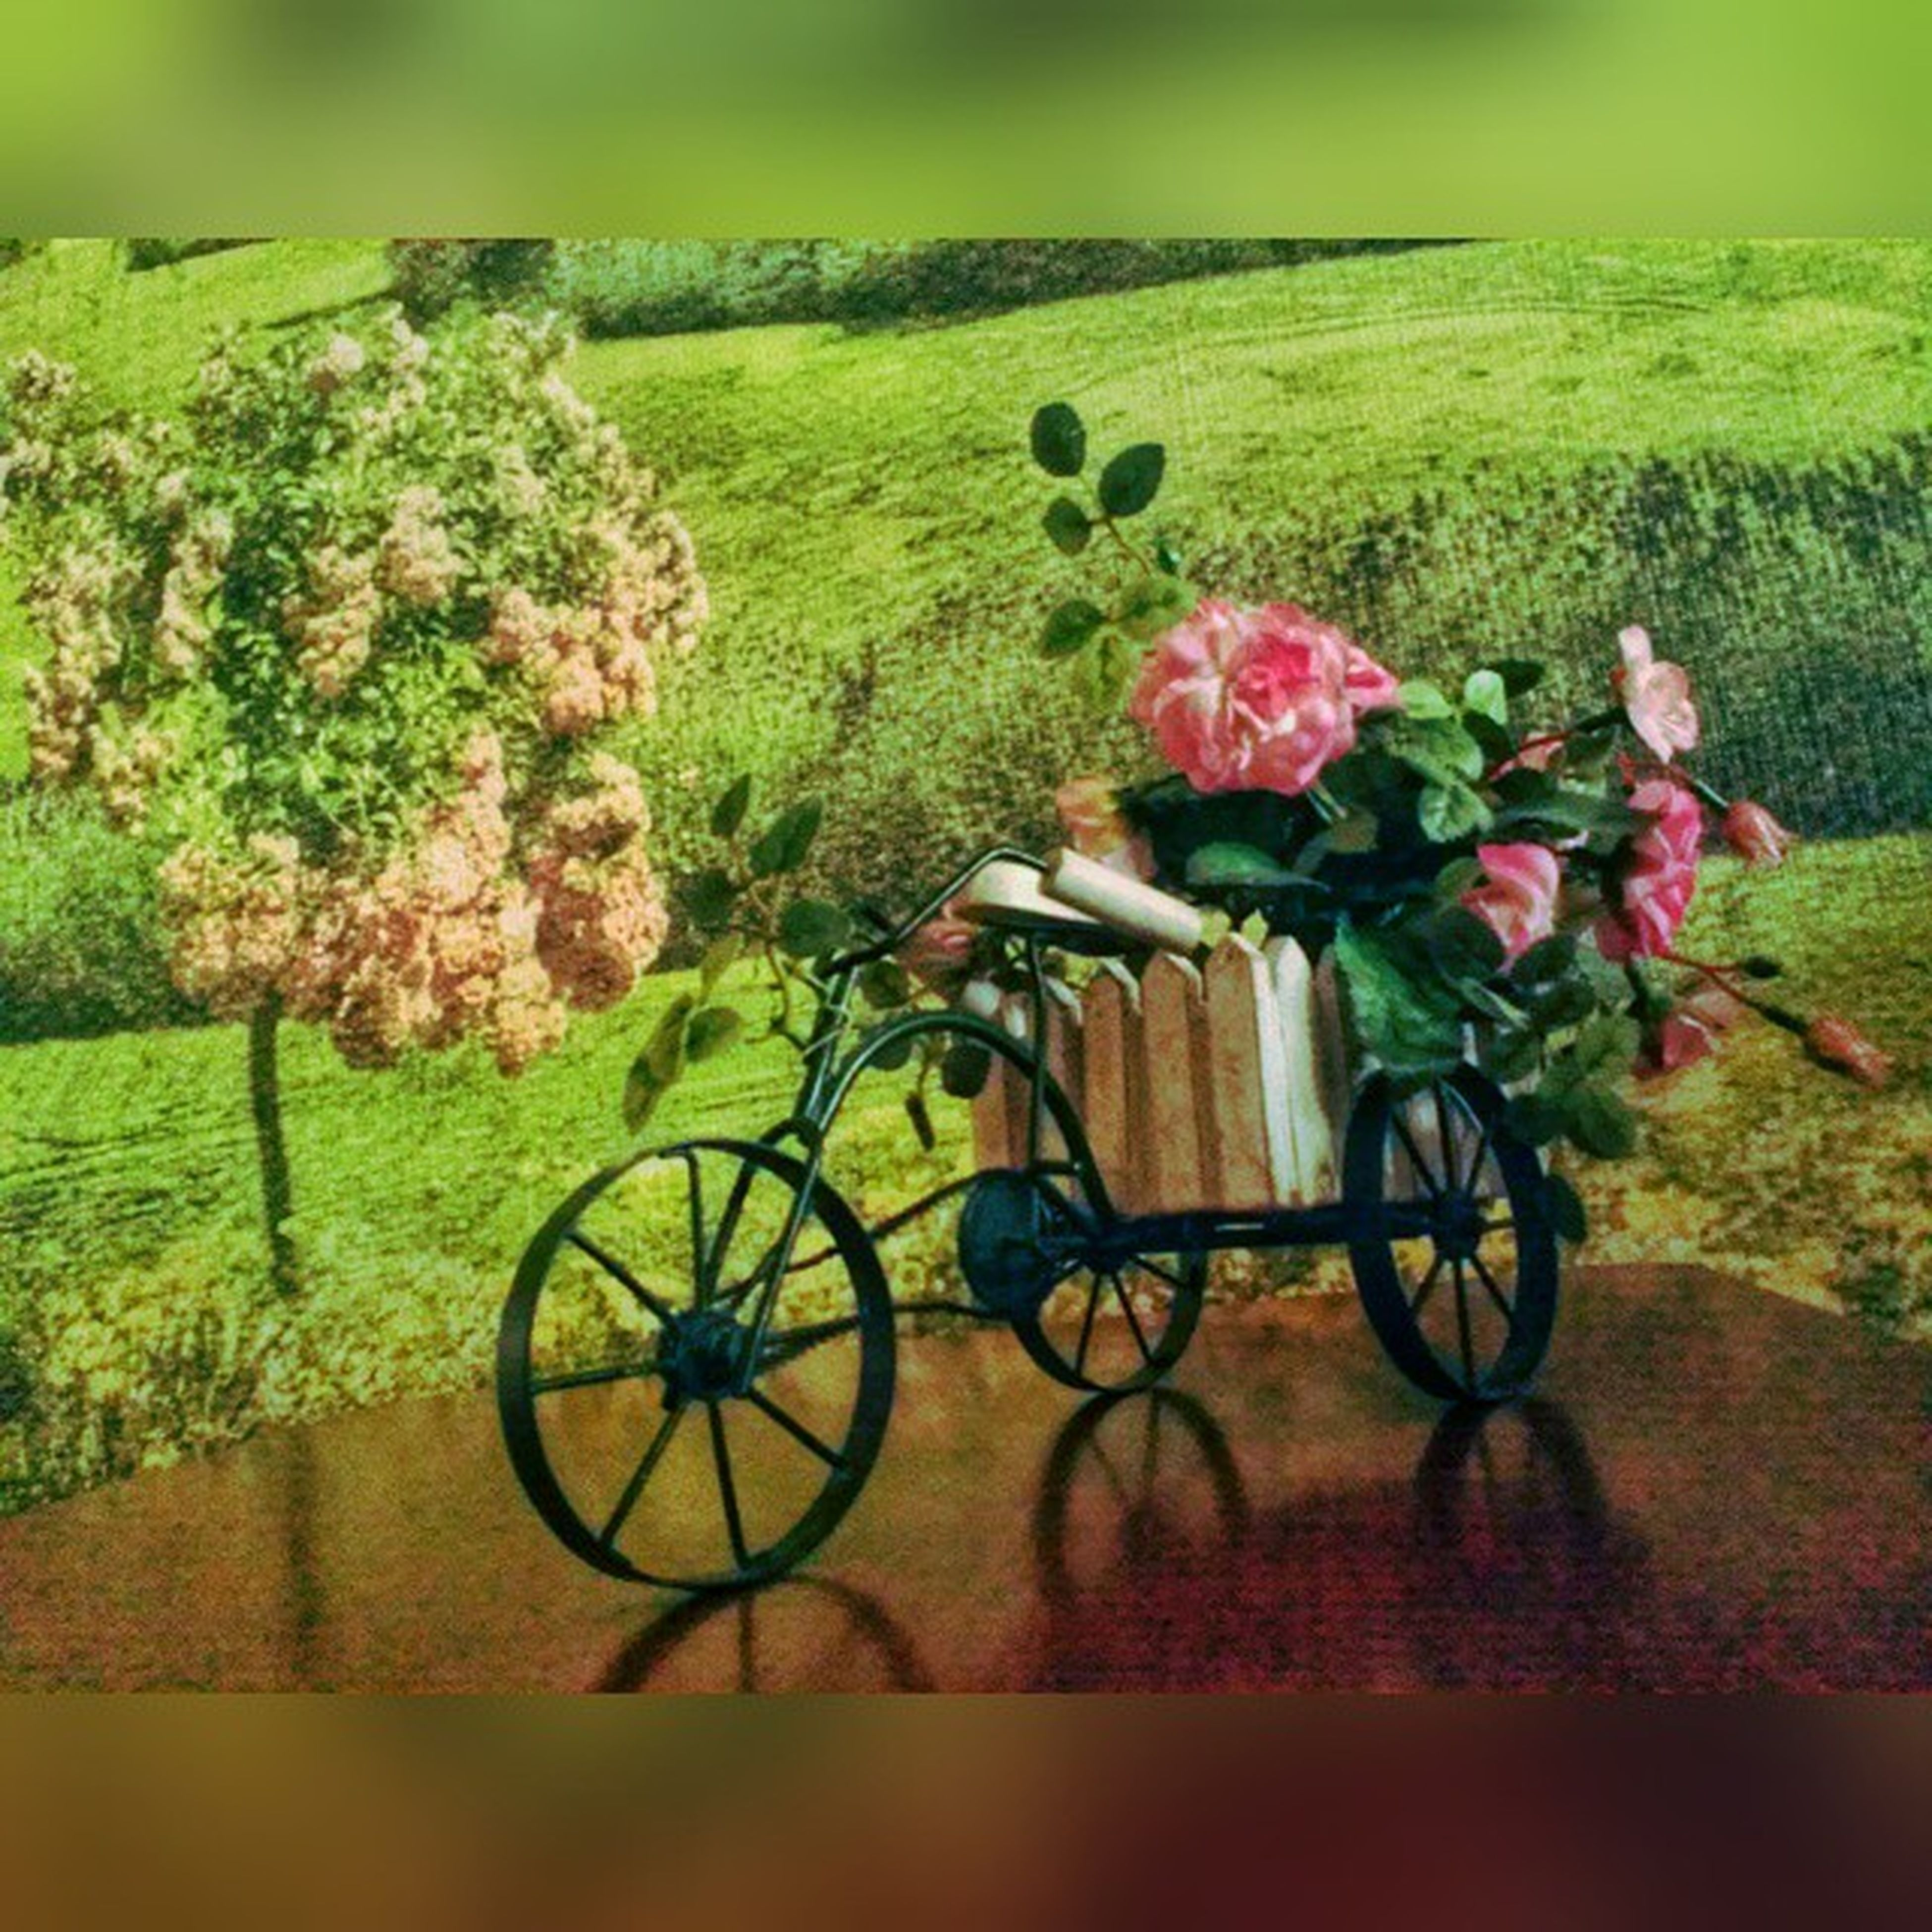 bicycle, flower, land vehicle, plant, growth, transportation, grass, mode of transport, nature, green color, beauty in nature, parked, parking, stationary, field, no people, tranquility, day, outdoors, park - man made space